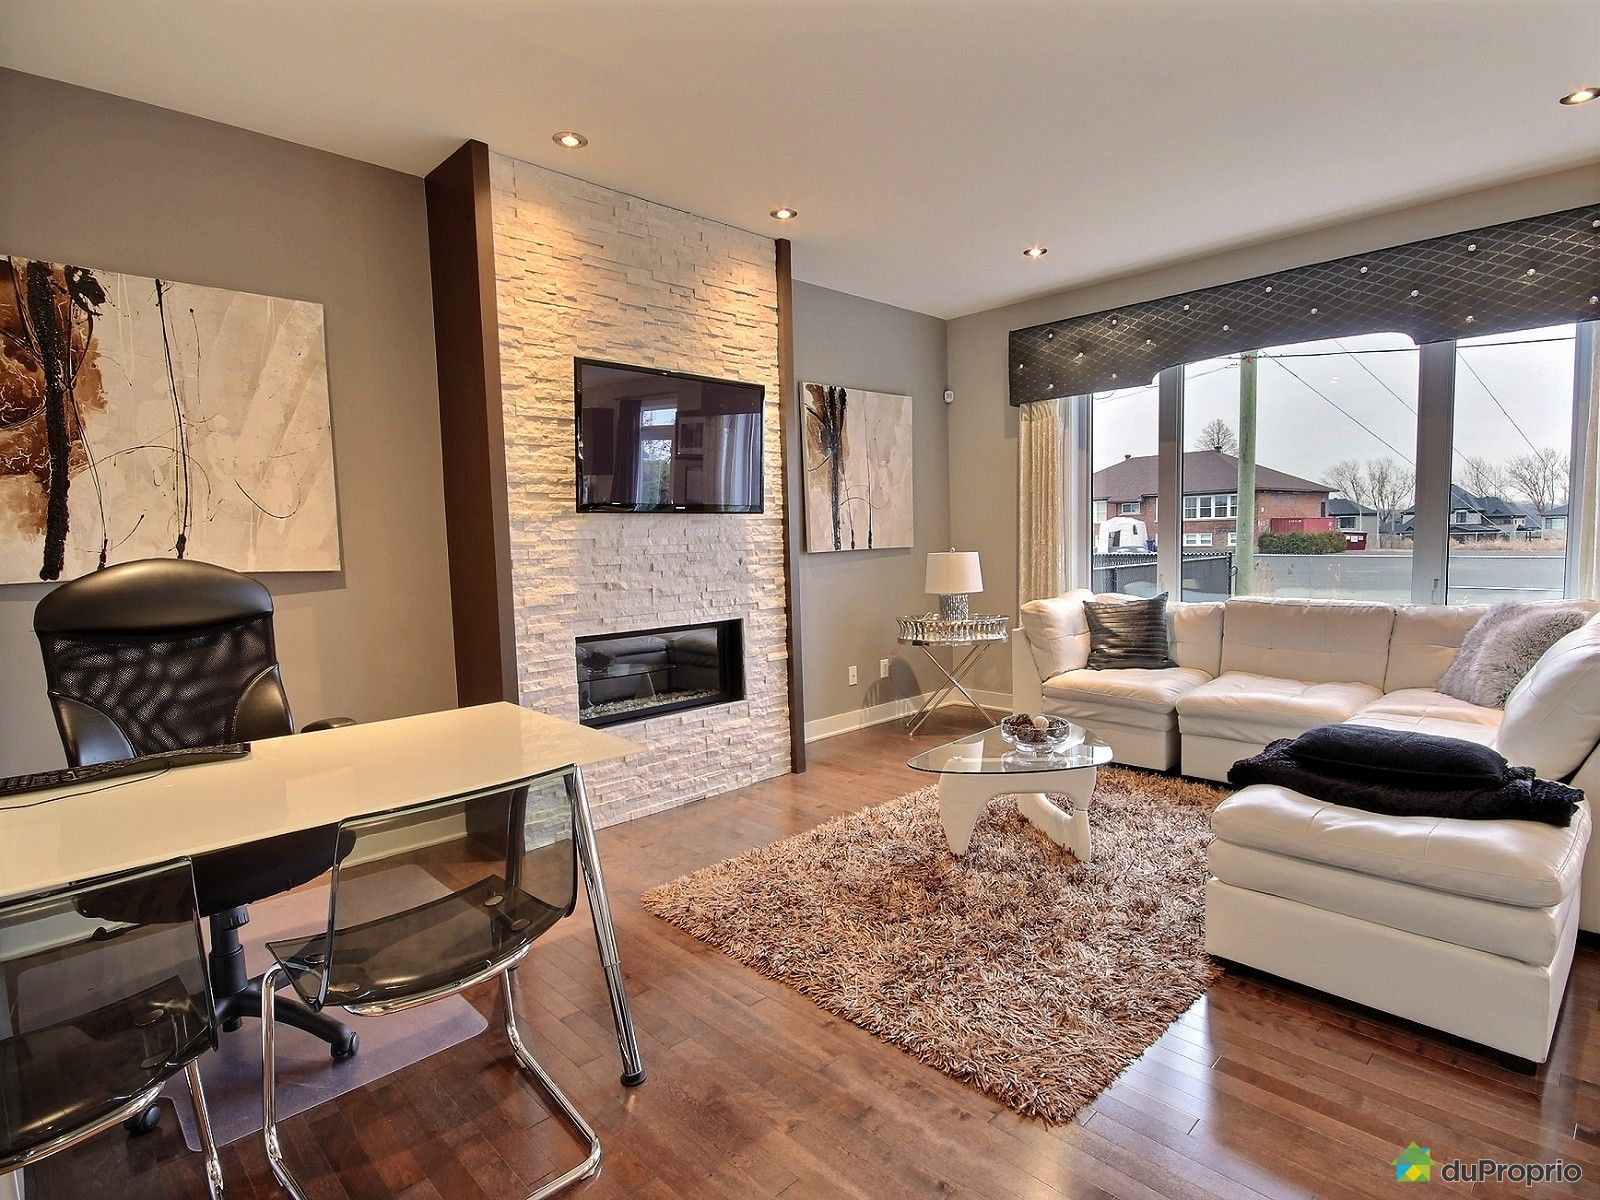 Newly built house for sale in duvernay 7310 avenue des tilleuls duproprio - Armoire pour mansarde ...